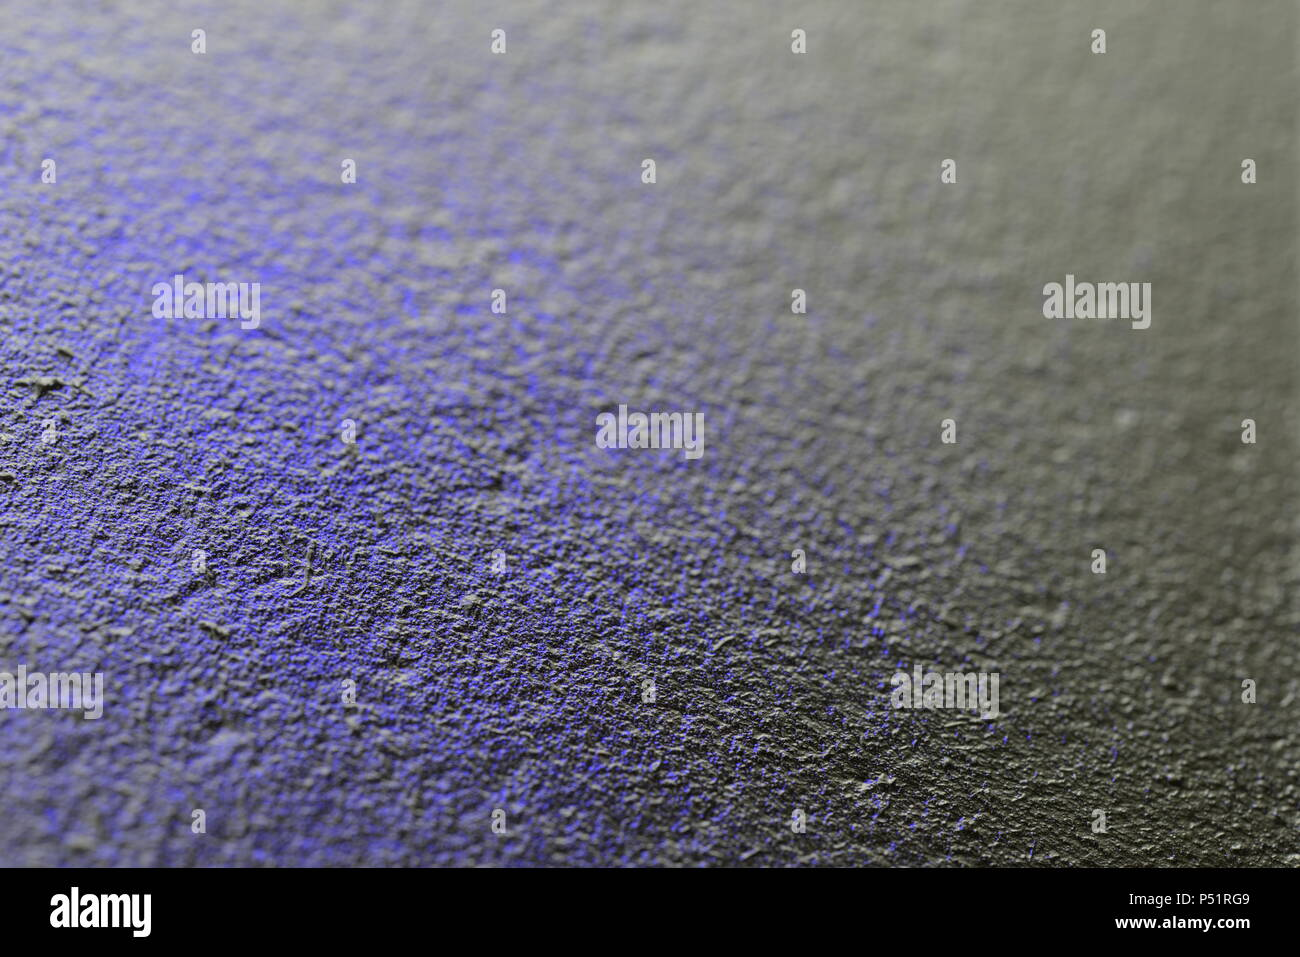 Cast Iron Metal Surfaces - Stock Image